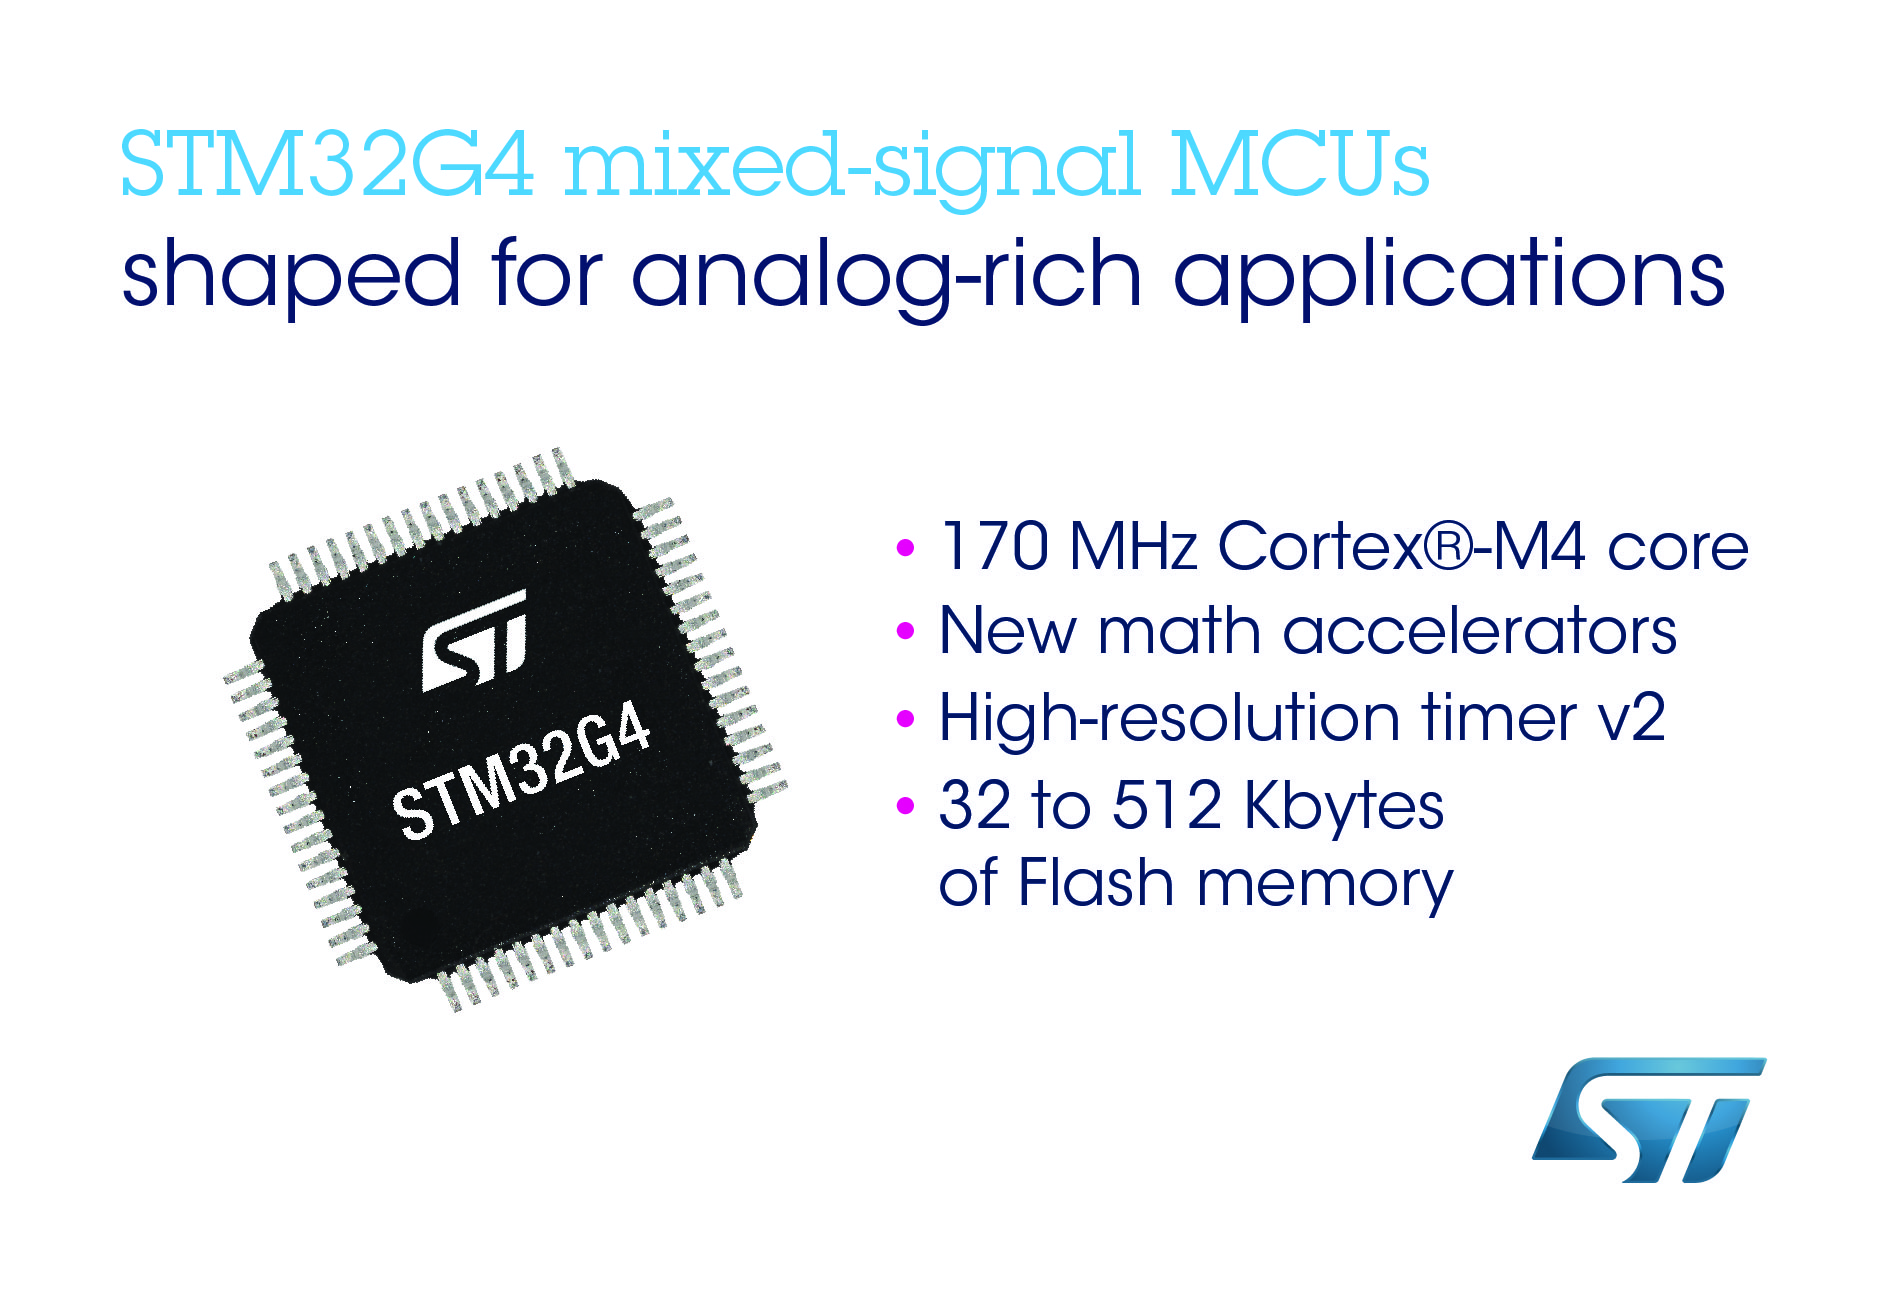 STMicroelectronics has released its STM32G4 microcontroller